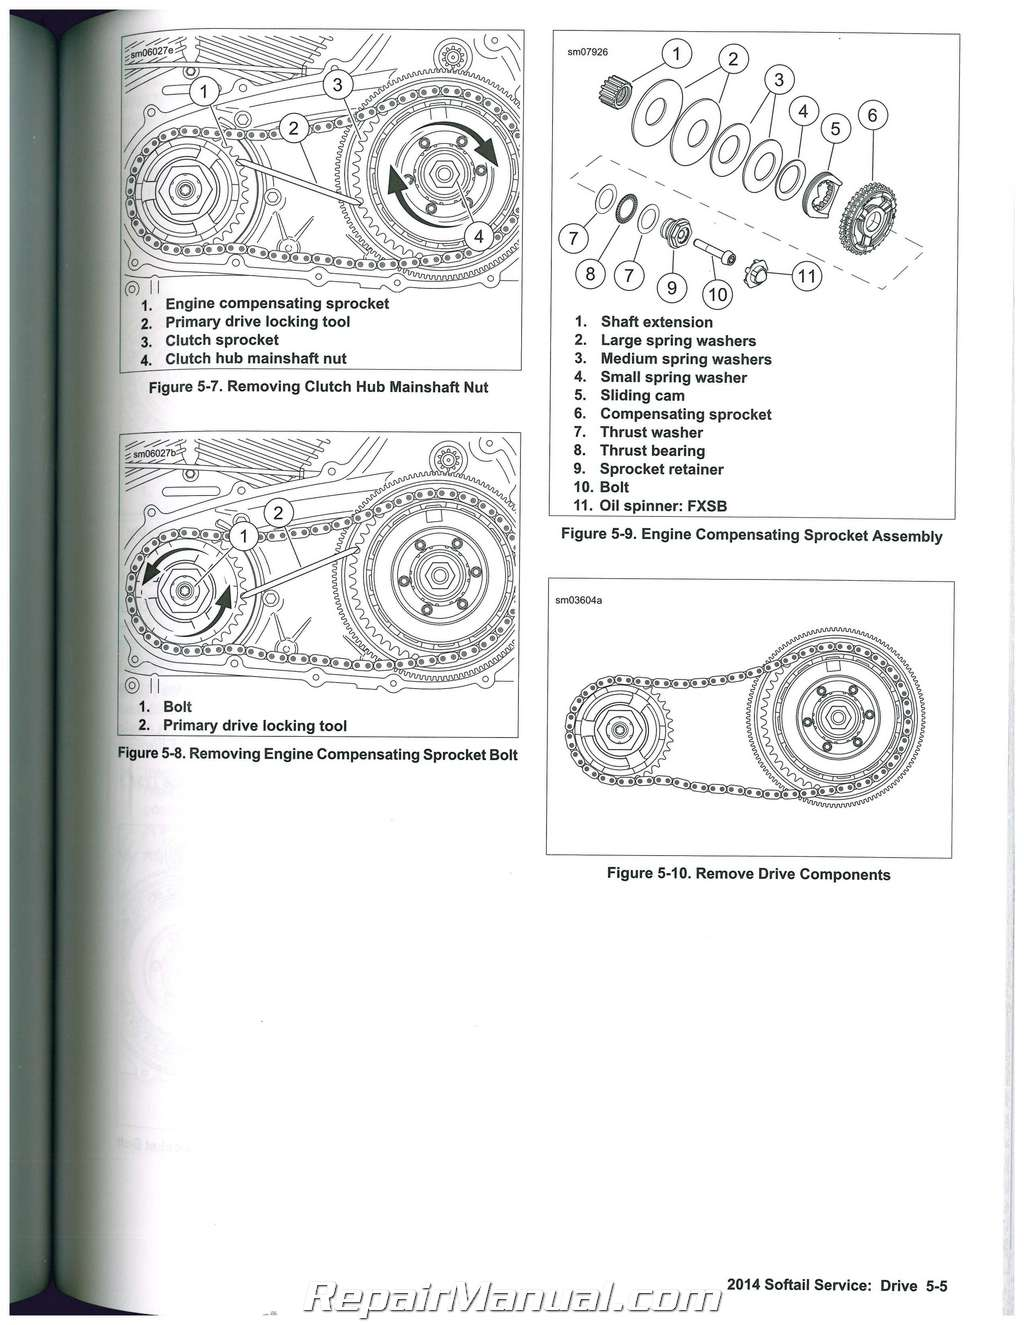 2014 Harley Davidson Softail Motorcycle Service Manual